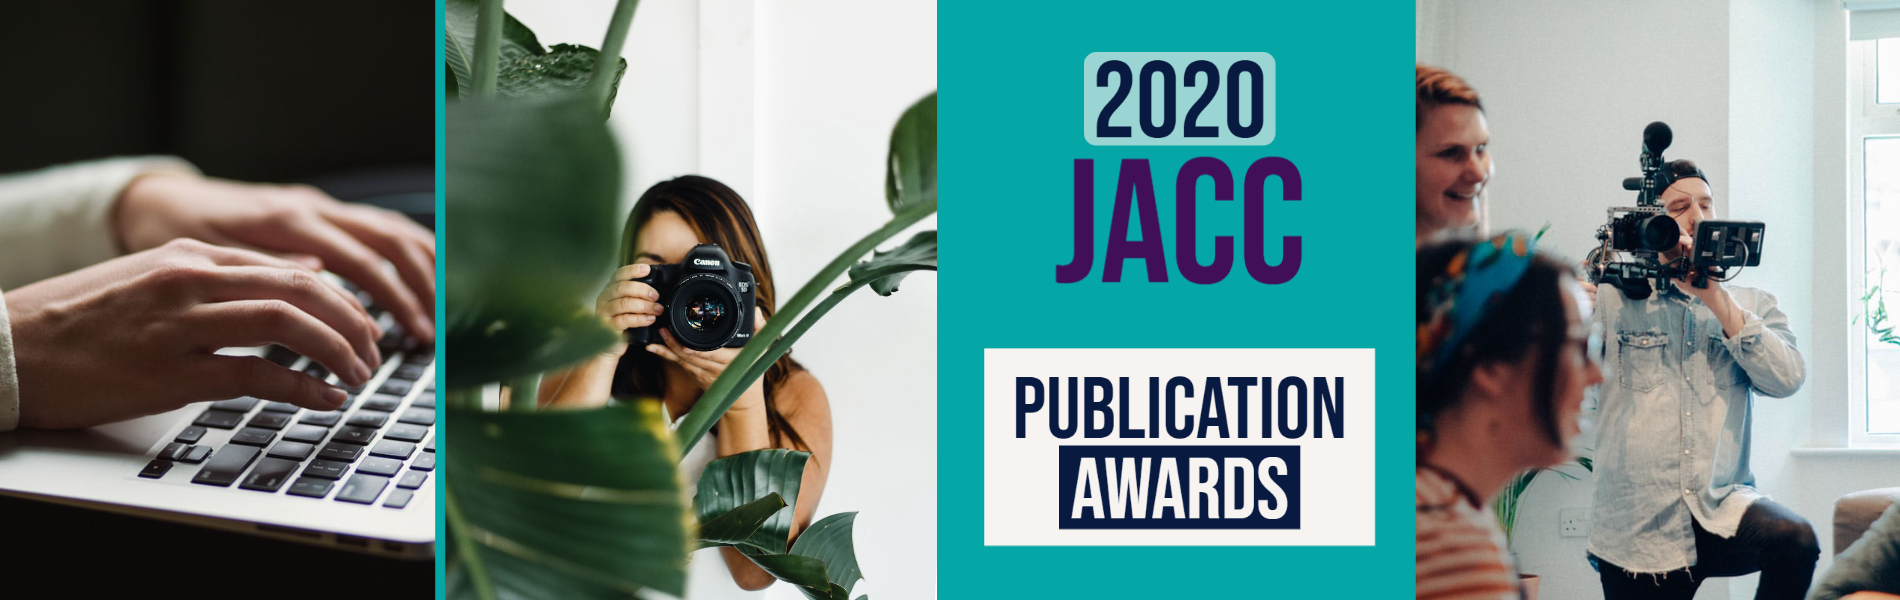 2020 JACC HOMEPAGE BANNER